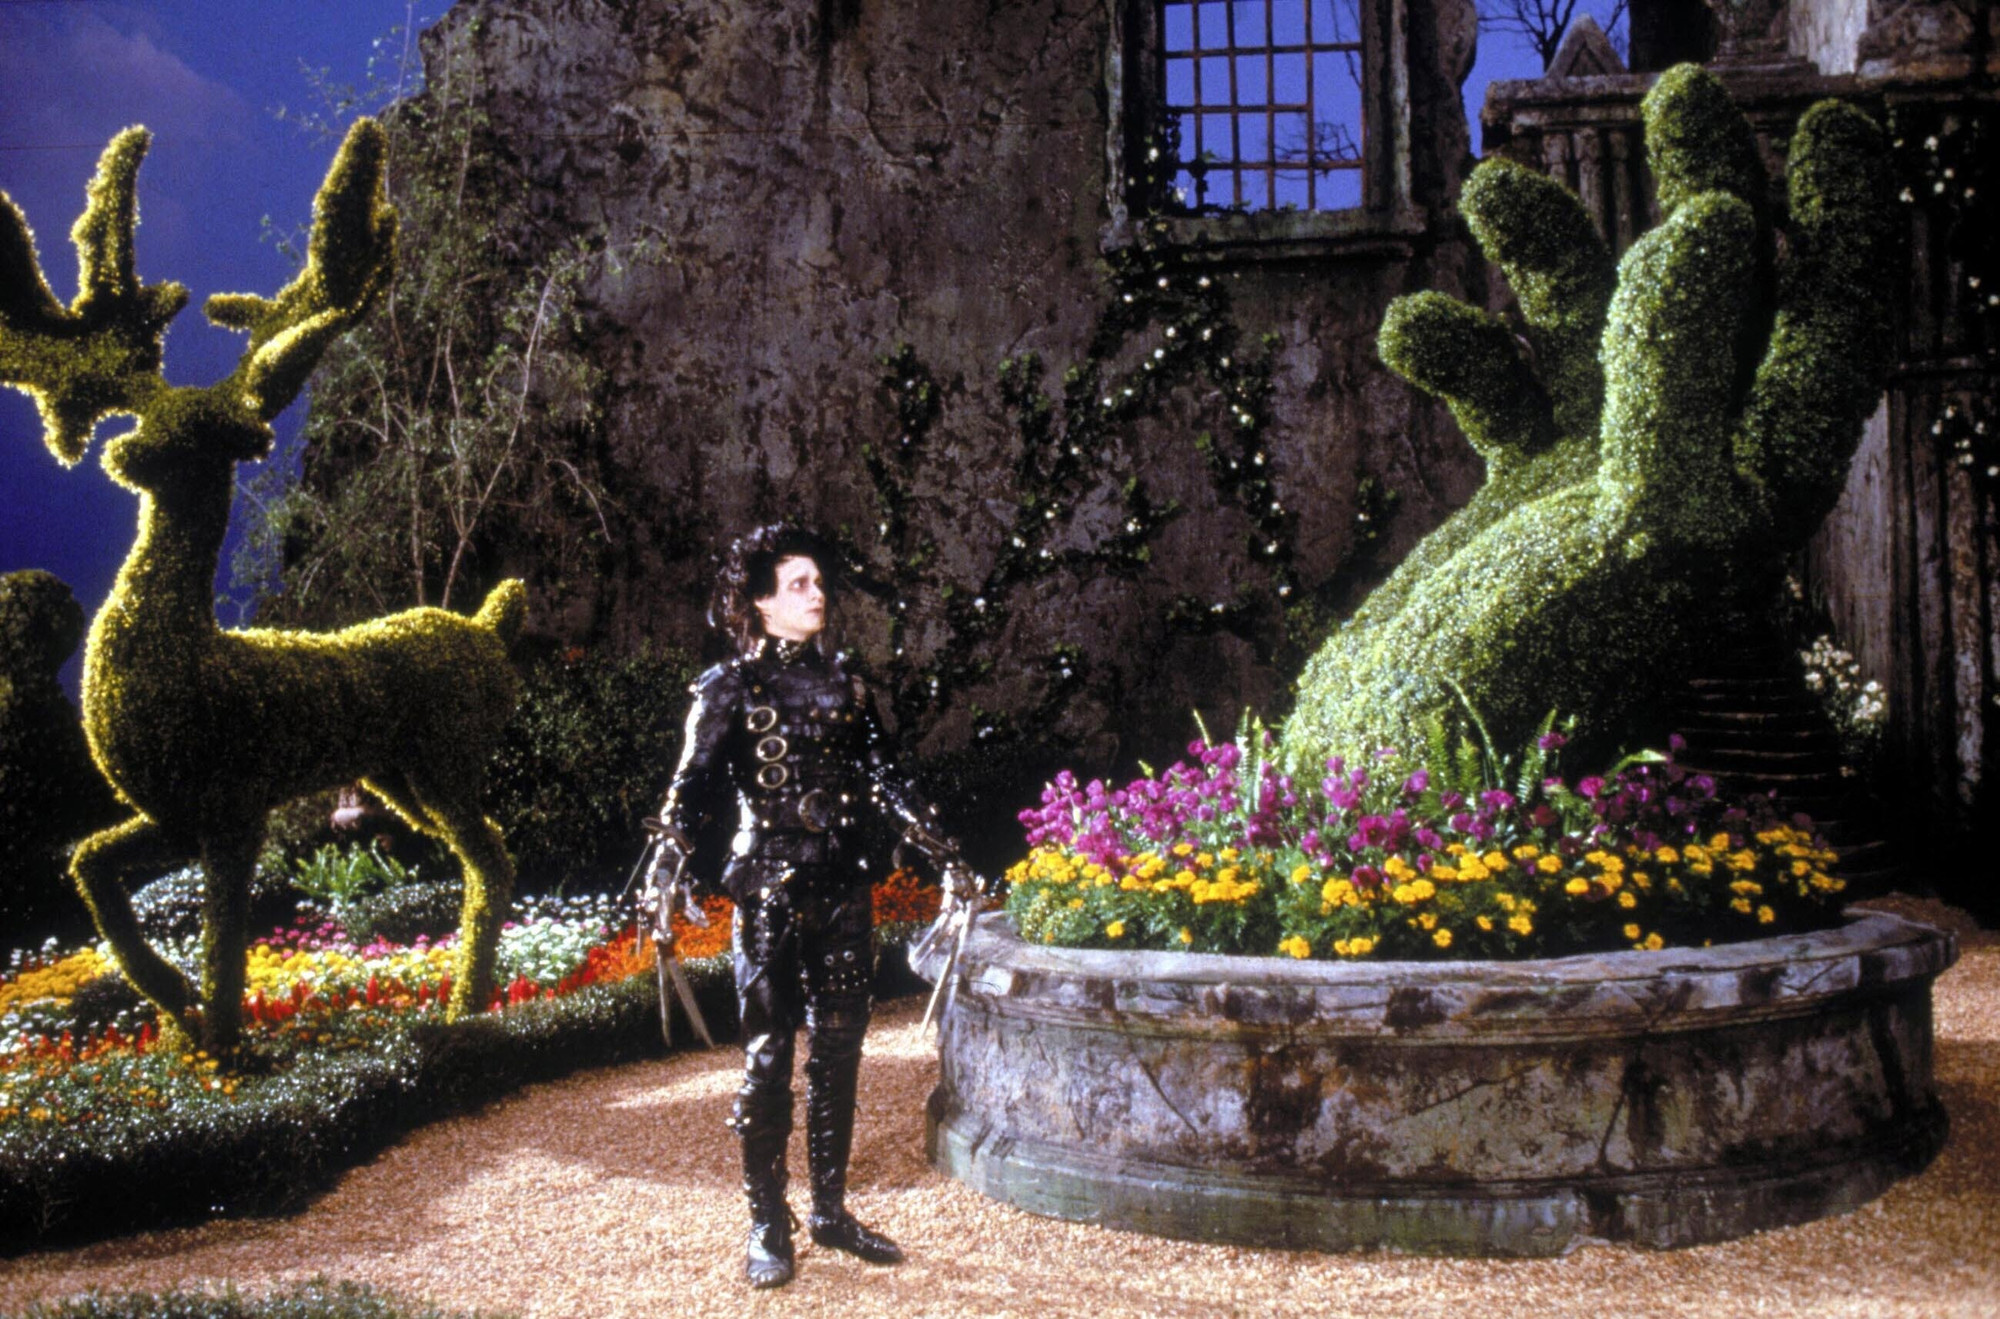 Tim Burton. Edward Scissorhands. 1990